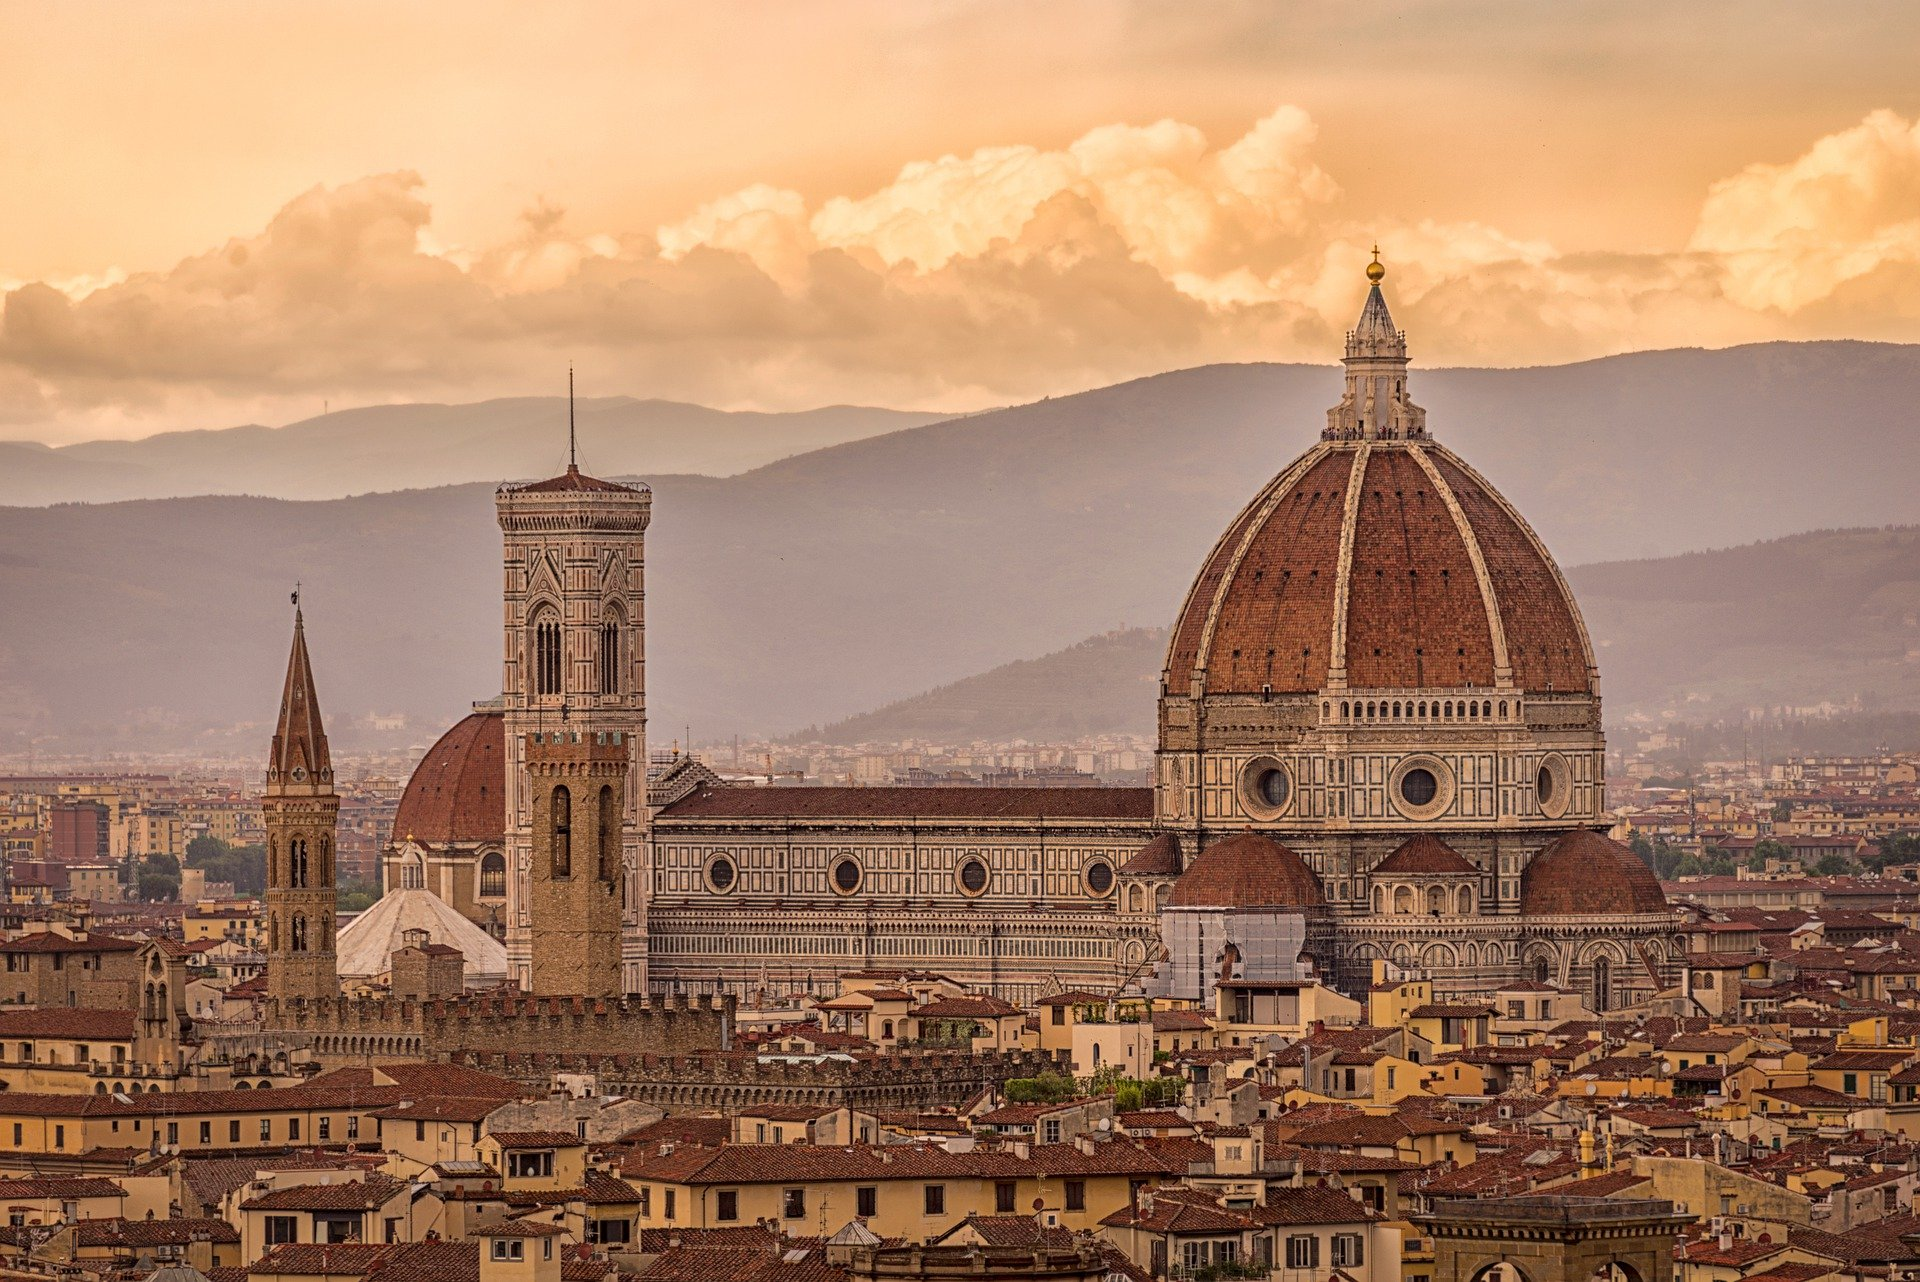 Italy - Cathedral of Santa Maria del Fiore in Florence